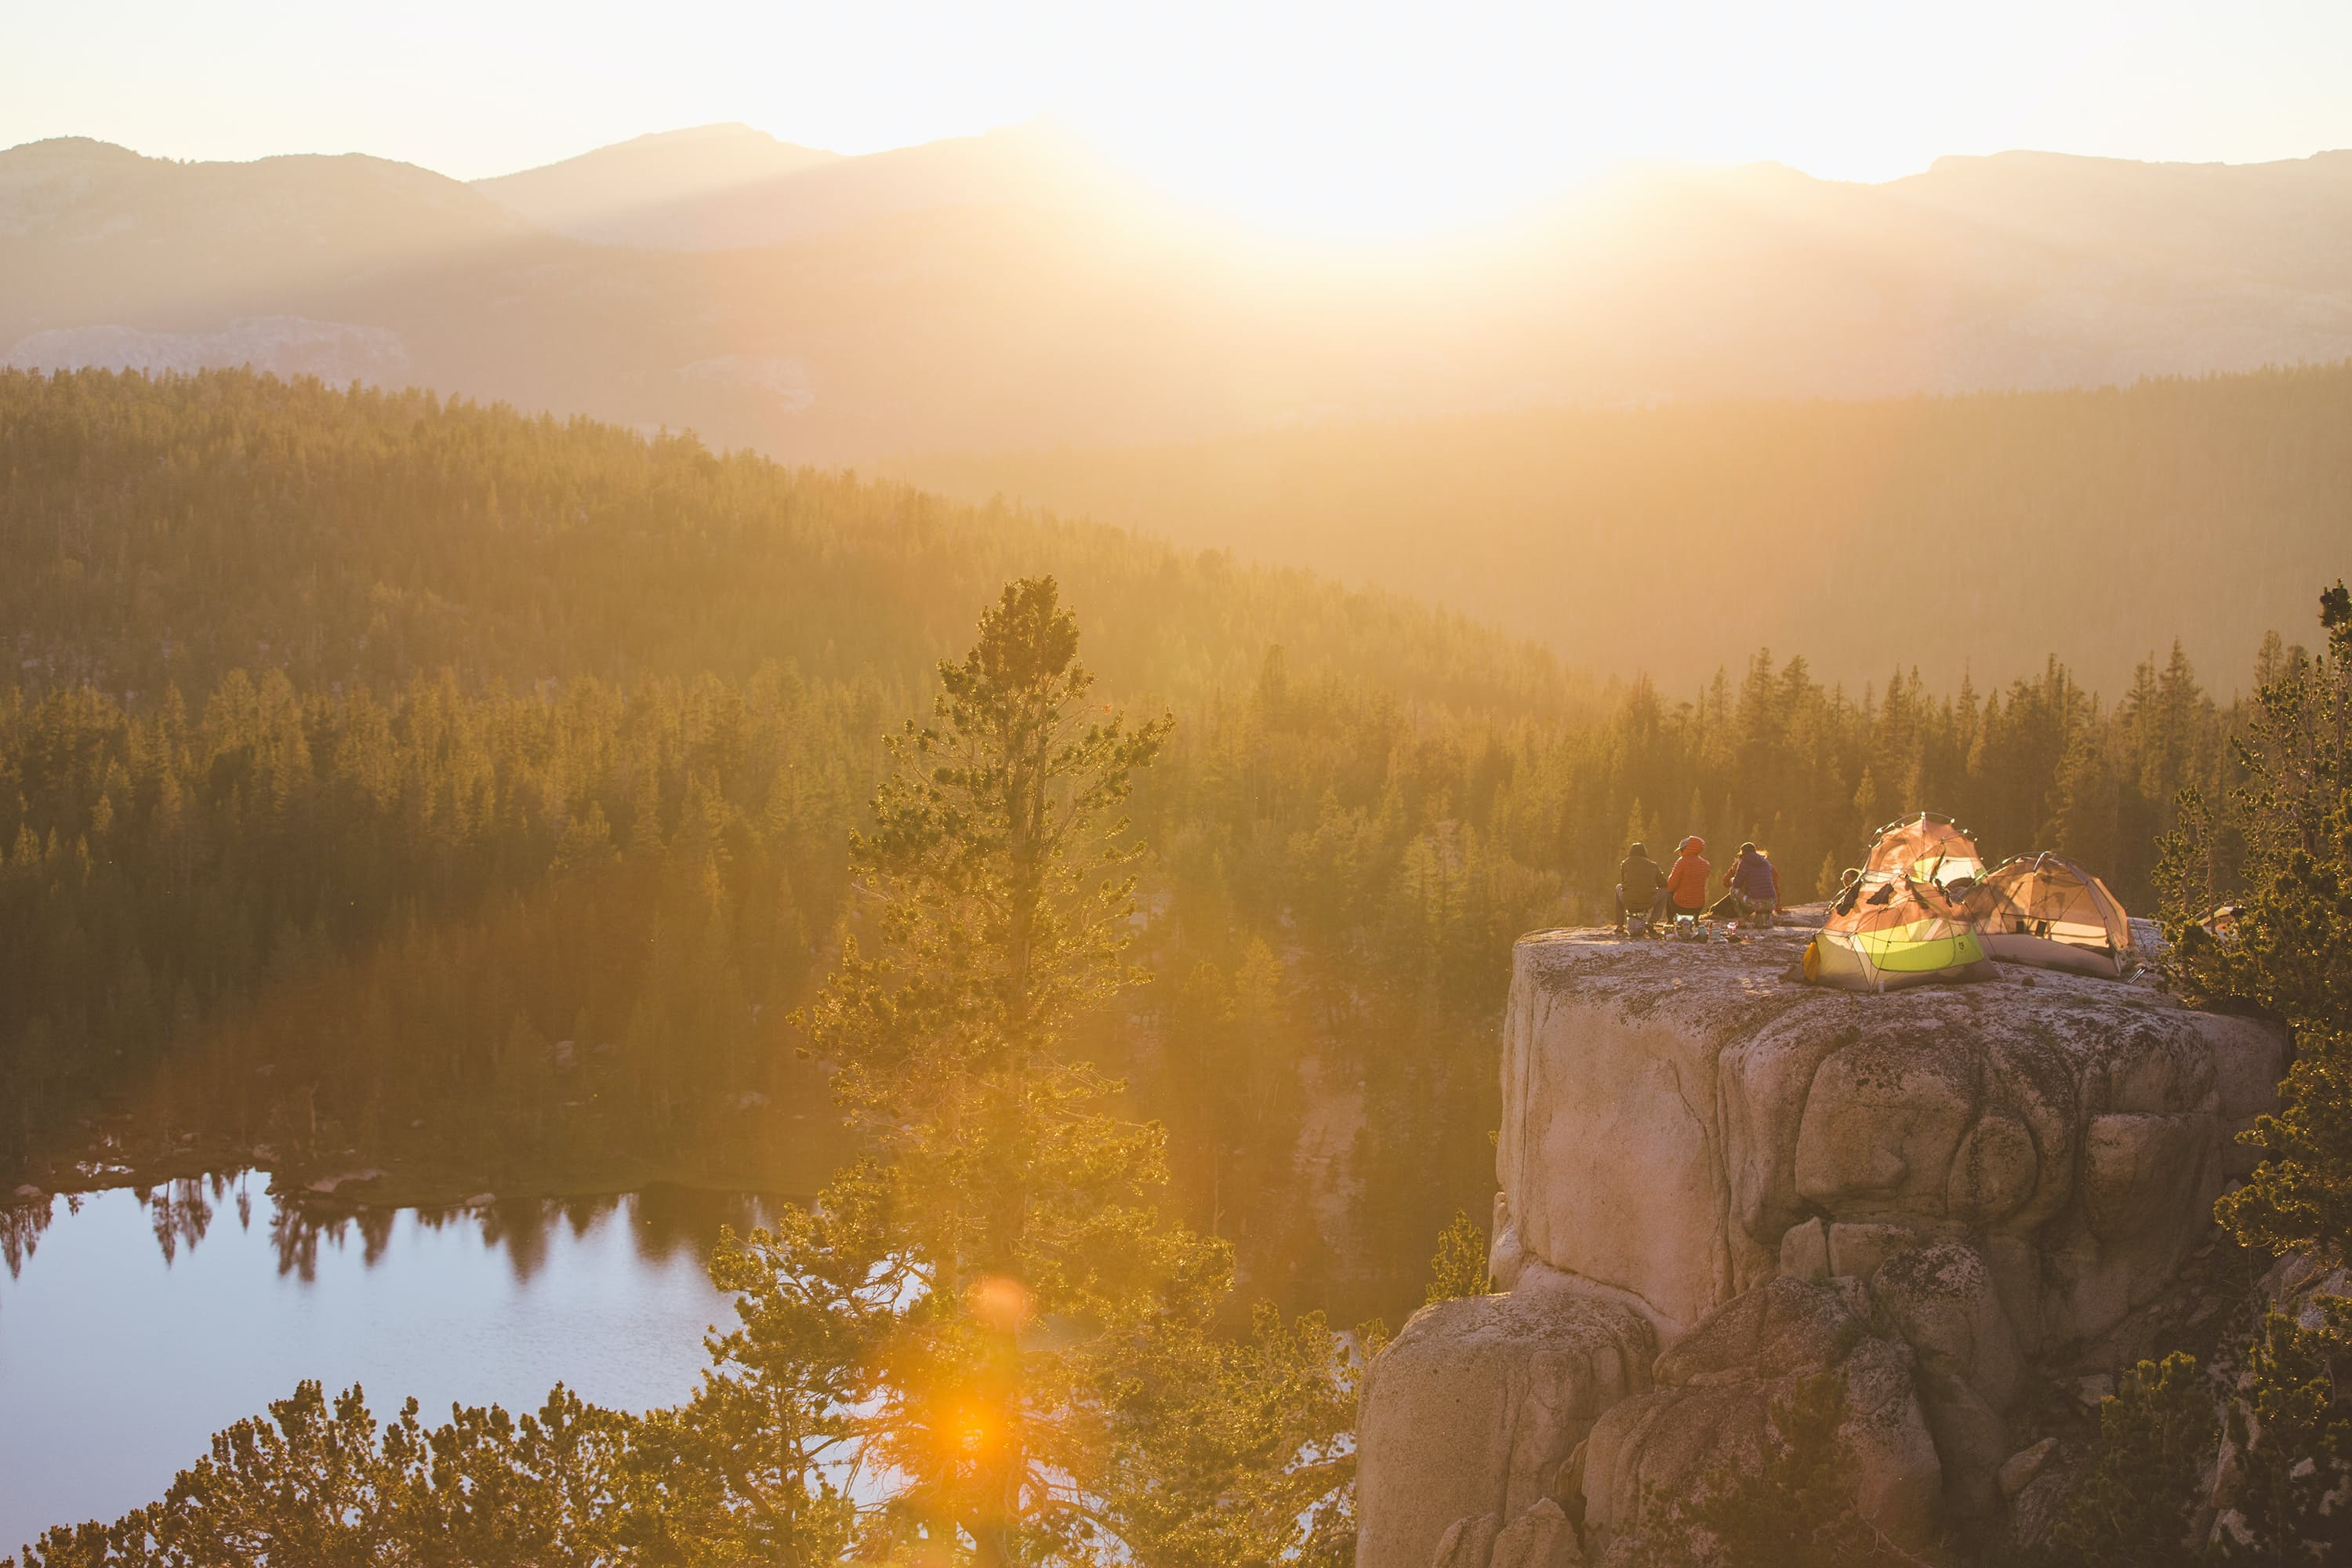 Huckberry insider's guide yosemite national park alex souza main image young lakes.jpg?ixlib=rails 2.1